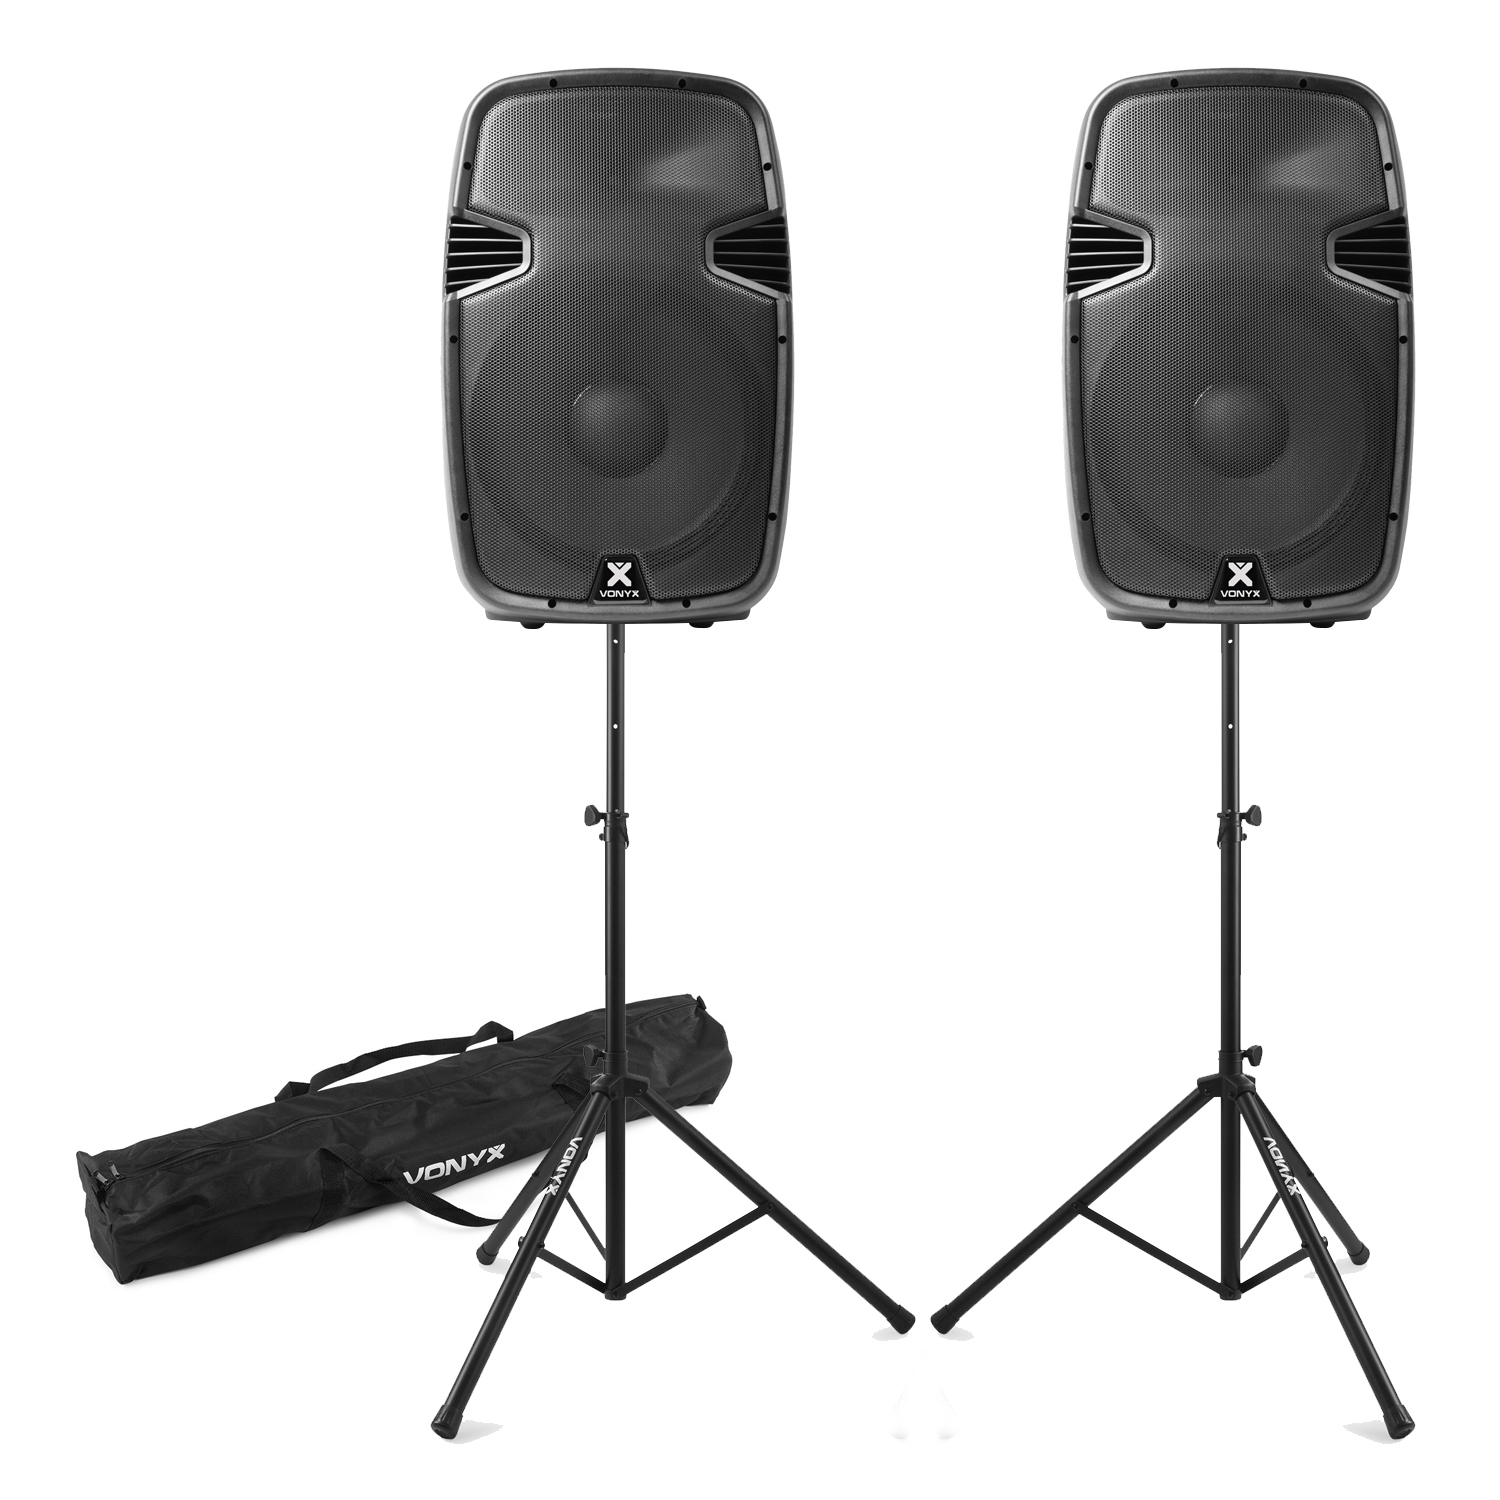 Vonyx SPJ-15 Bluetooth Active Speakers Pair with Stands